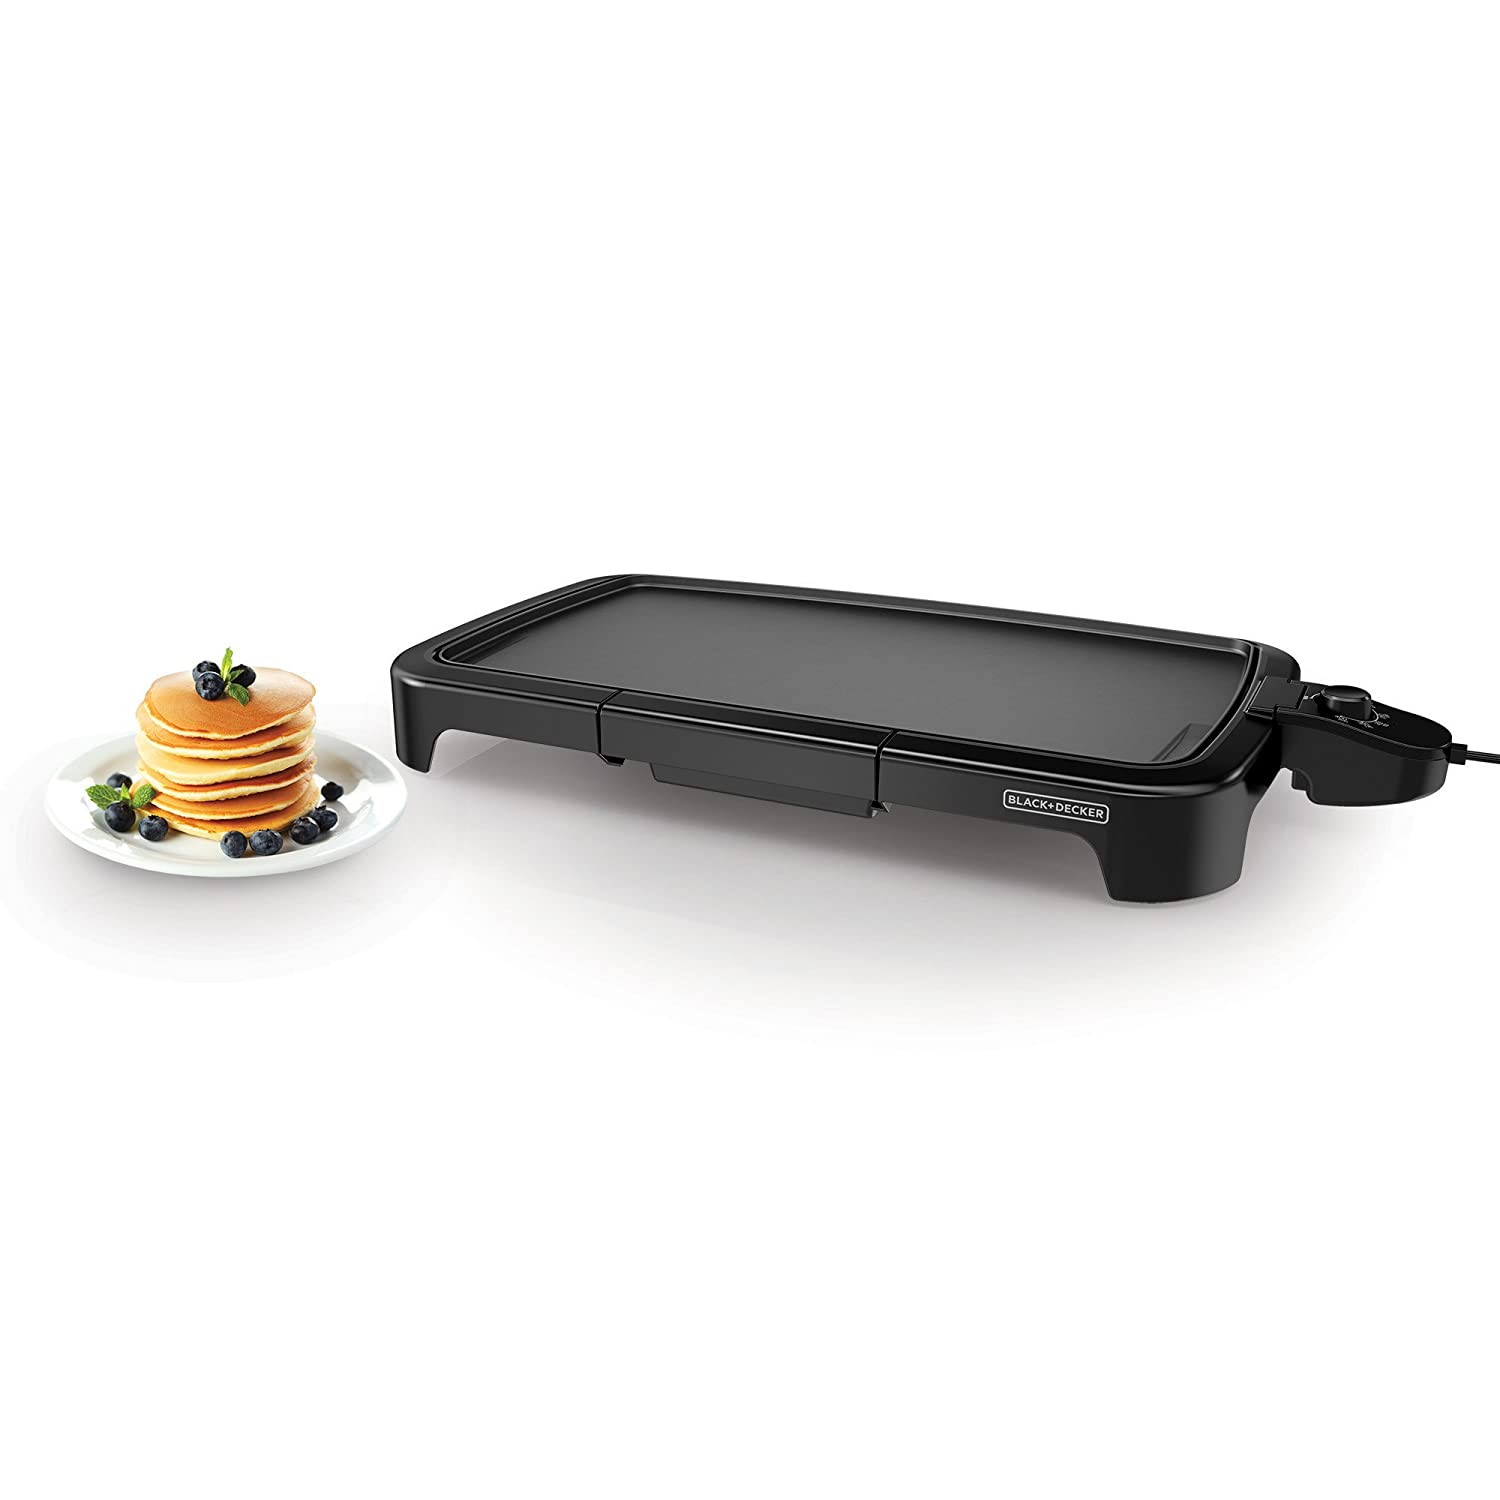 Pancake Maker Electric Grill Nonstick Cooker Griddle ...